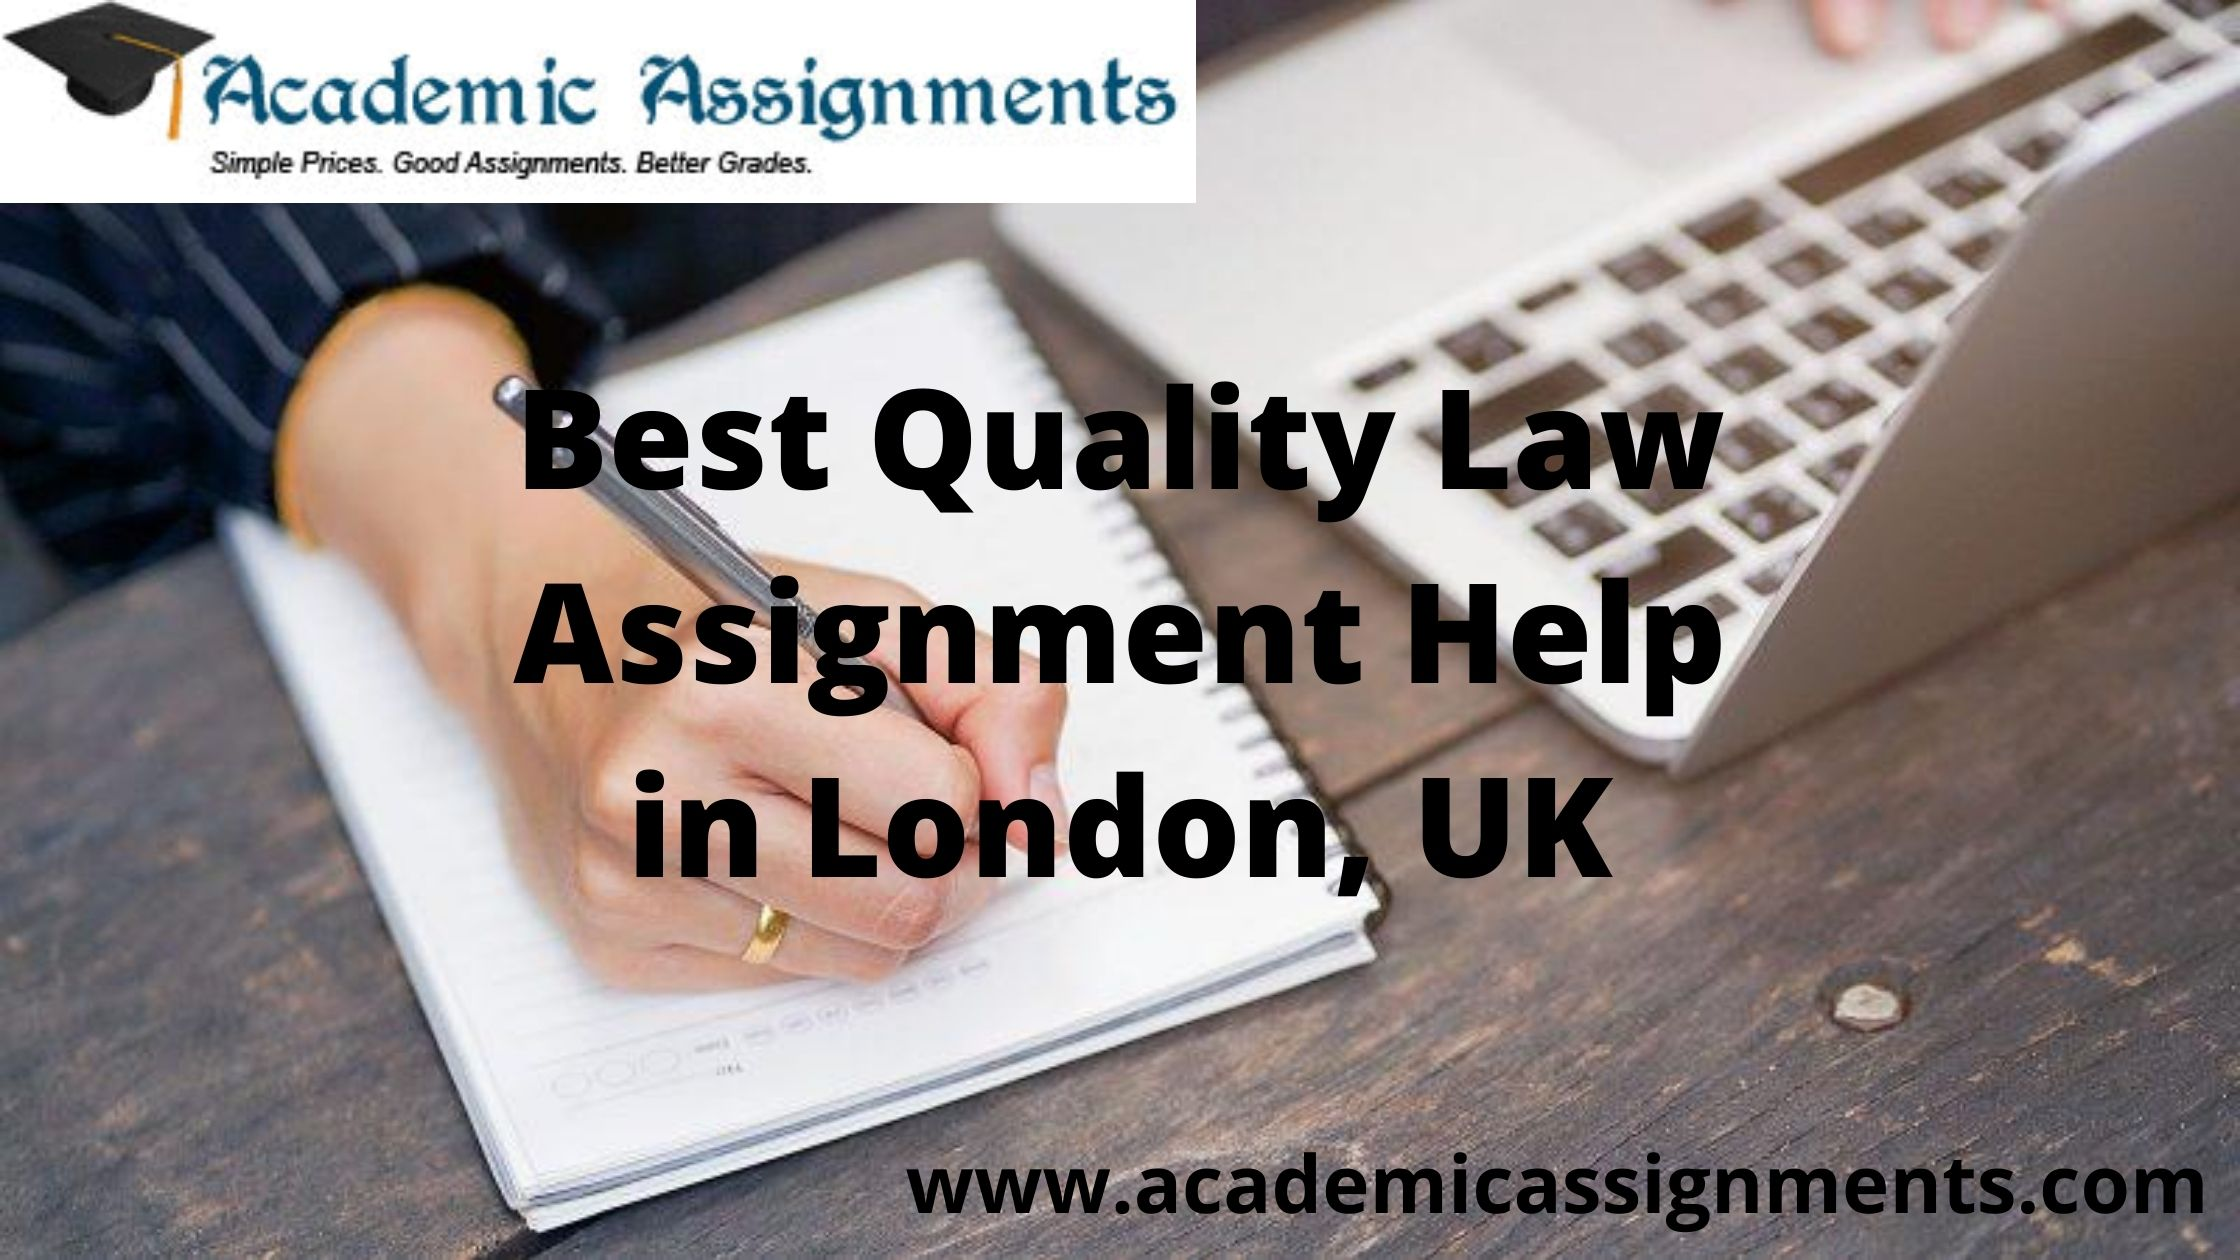 Best Quality Law Assignment Help in London